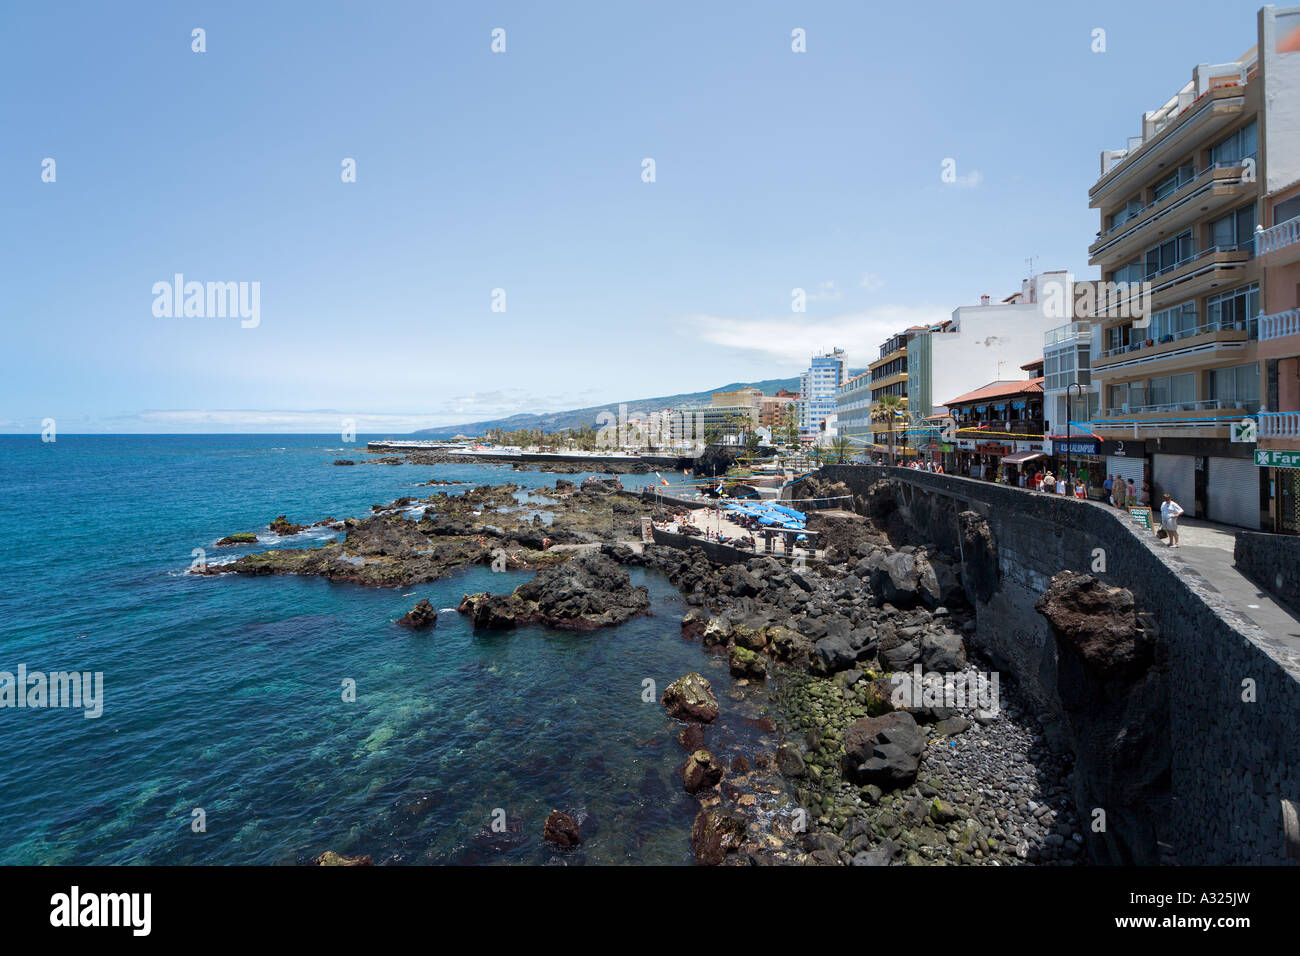 Paseo san telmo puerto de la cruz tenerife canary islands spain stock photo royalty free - Hotel san telmo puerto de la cruz tenerife ...